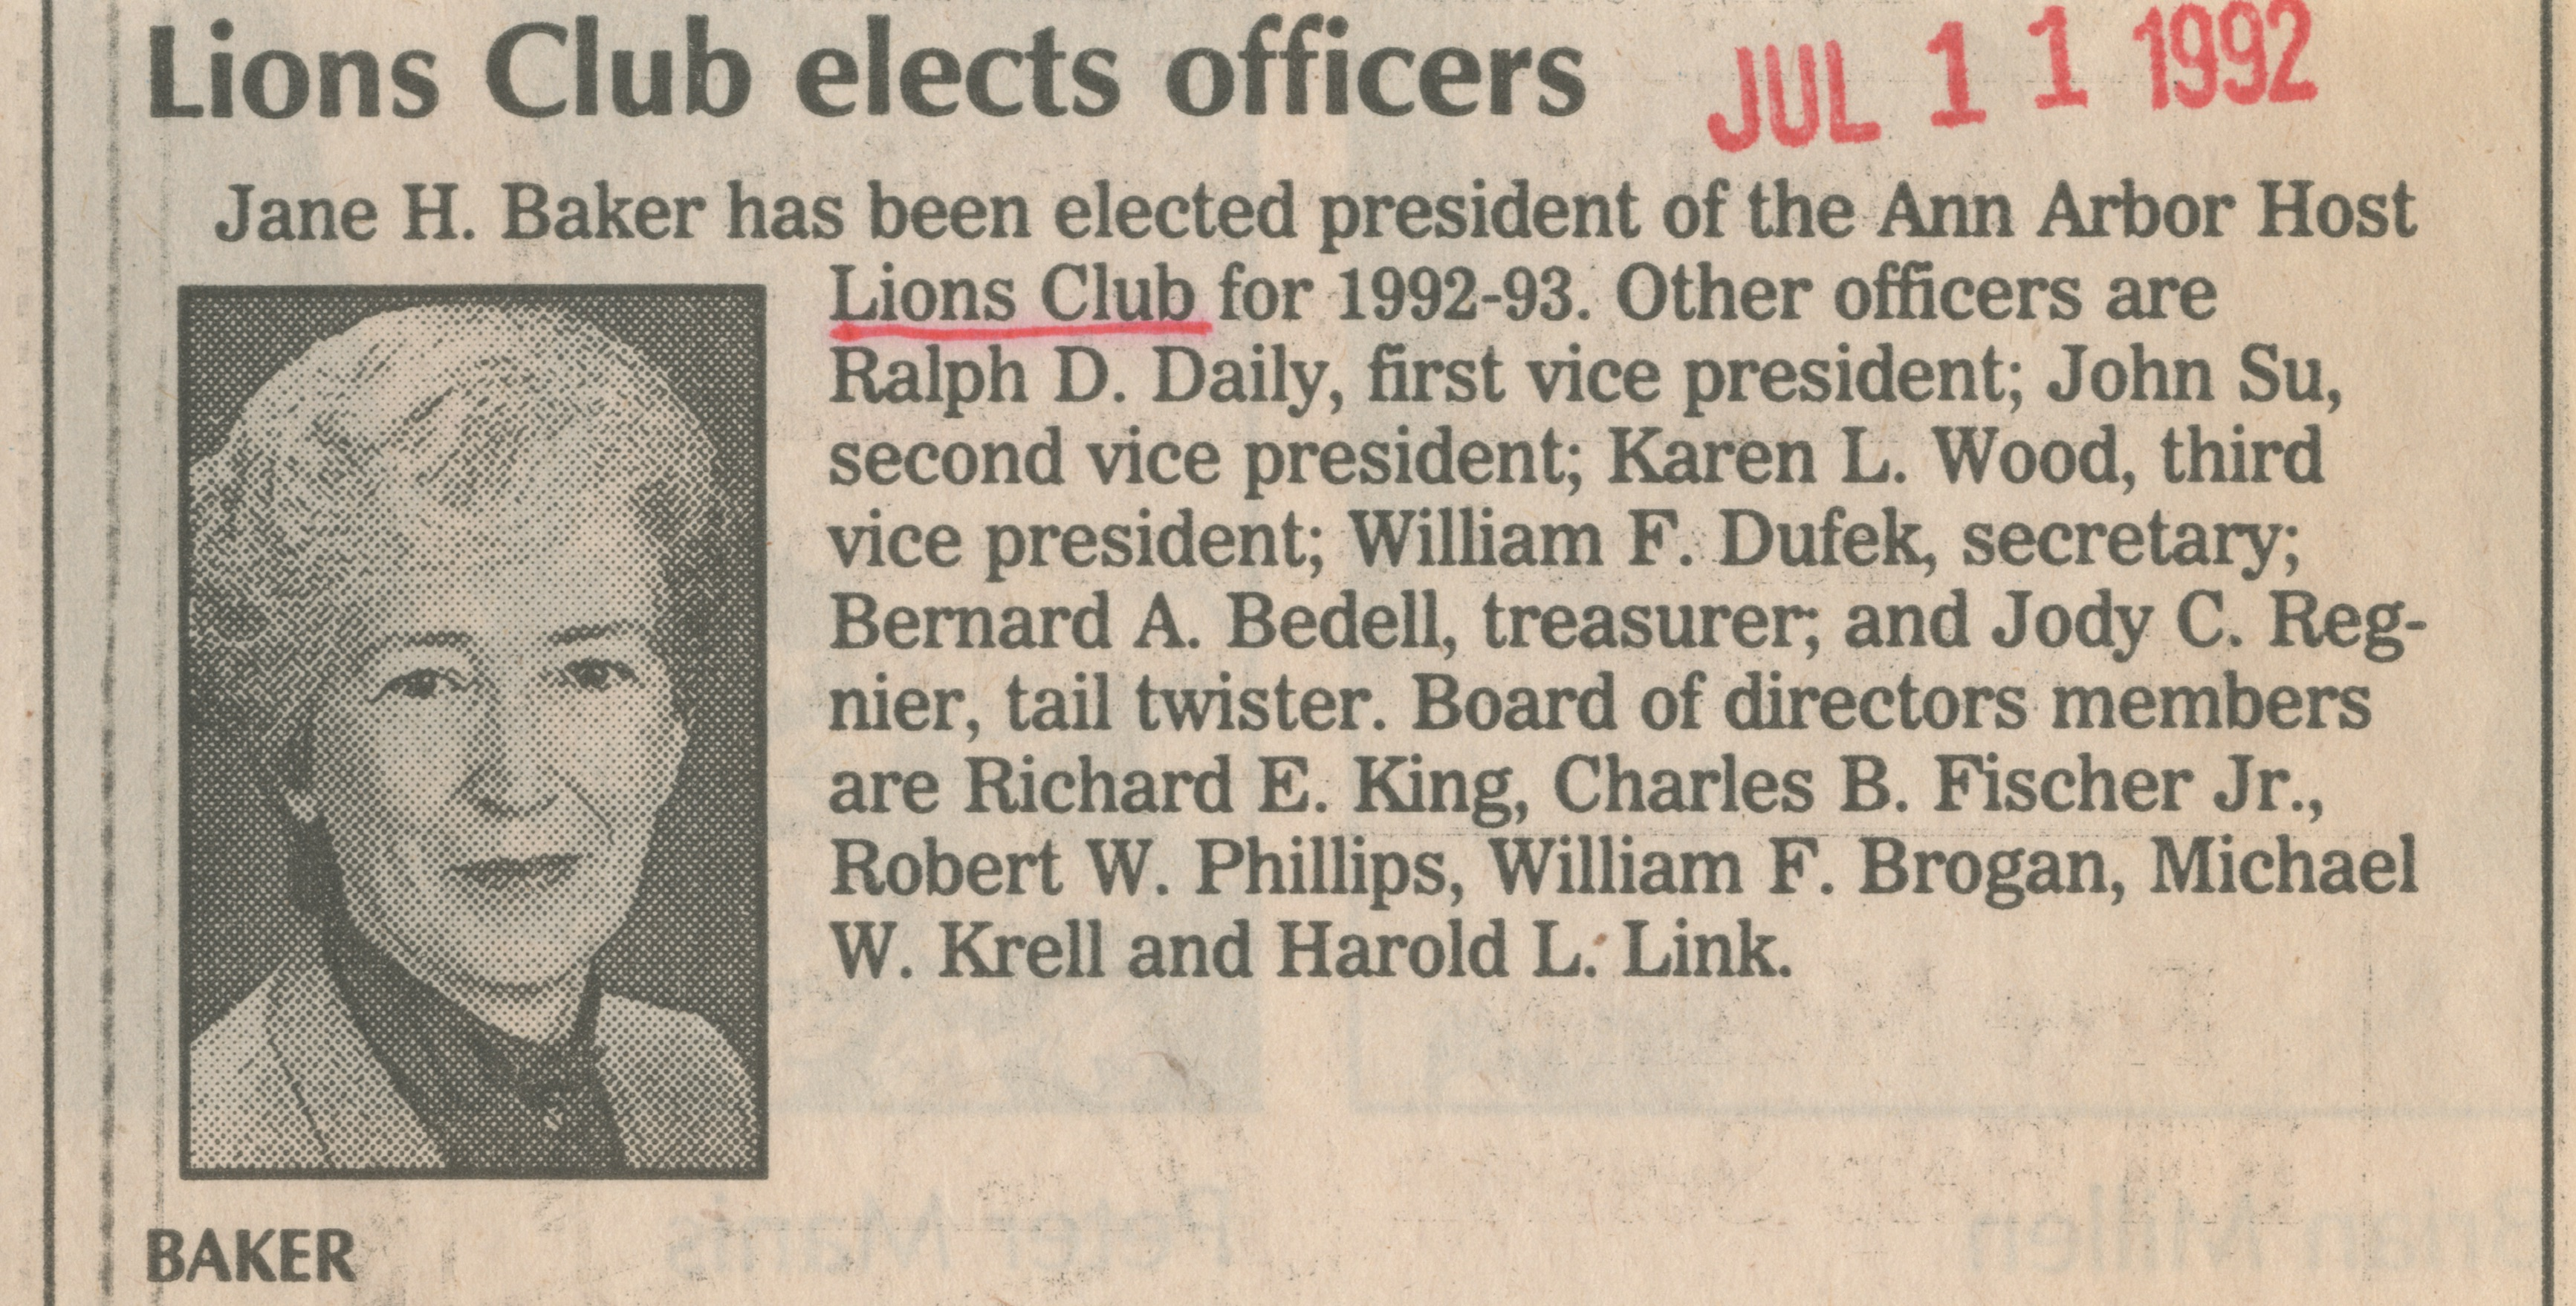 Lions Club elects officers image